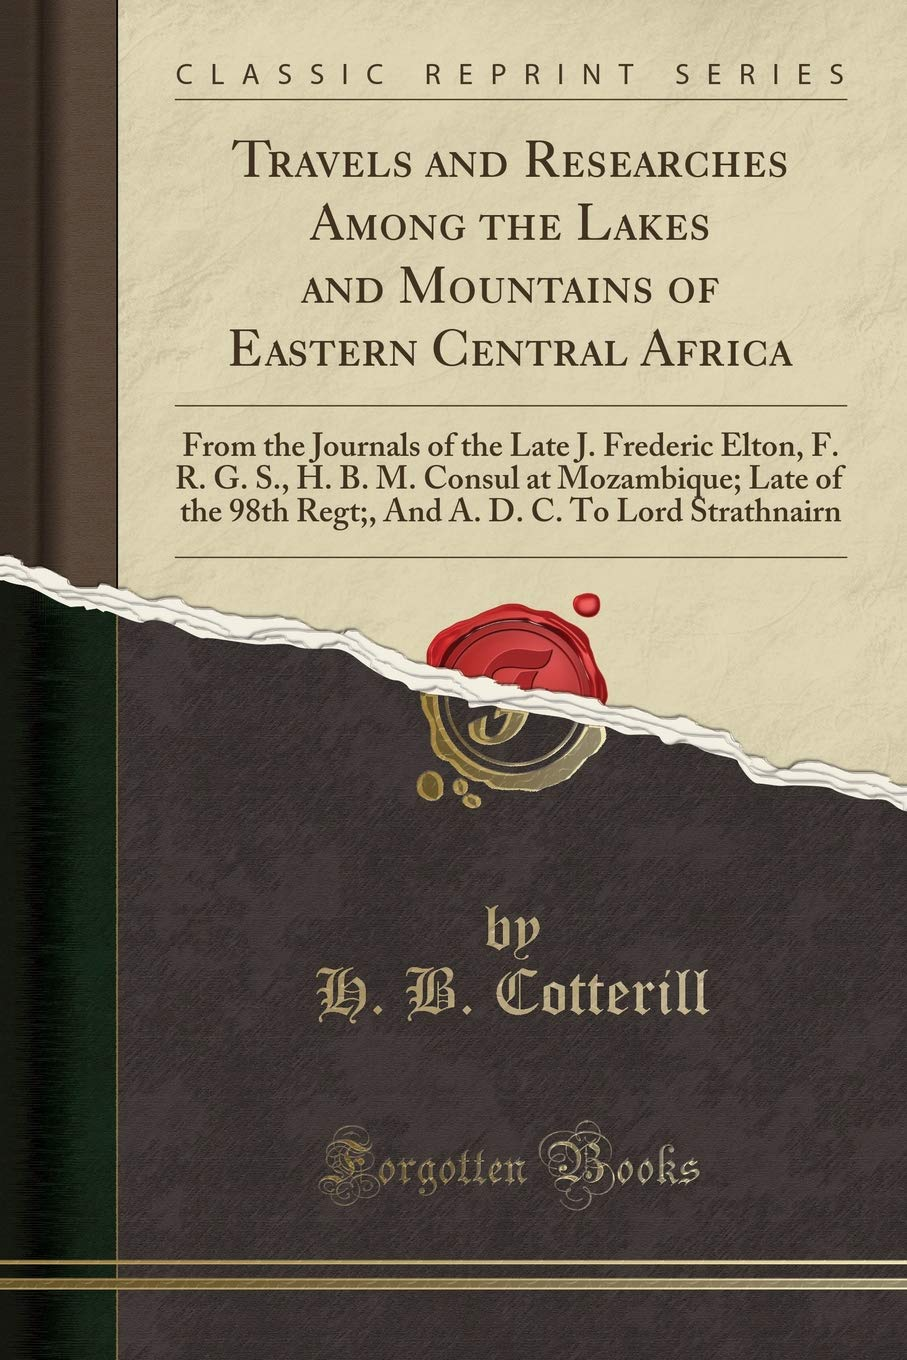 Download Travels and Researches Among the Lakes and Mountains of Eastern Central Africa: From the Journals of the Late J. Frederic Elton, F. R. G. S., H. B. M. ... D. C. To Lord Strathnairn (Classic Reprint) pdf epub